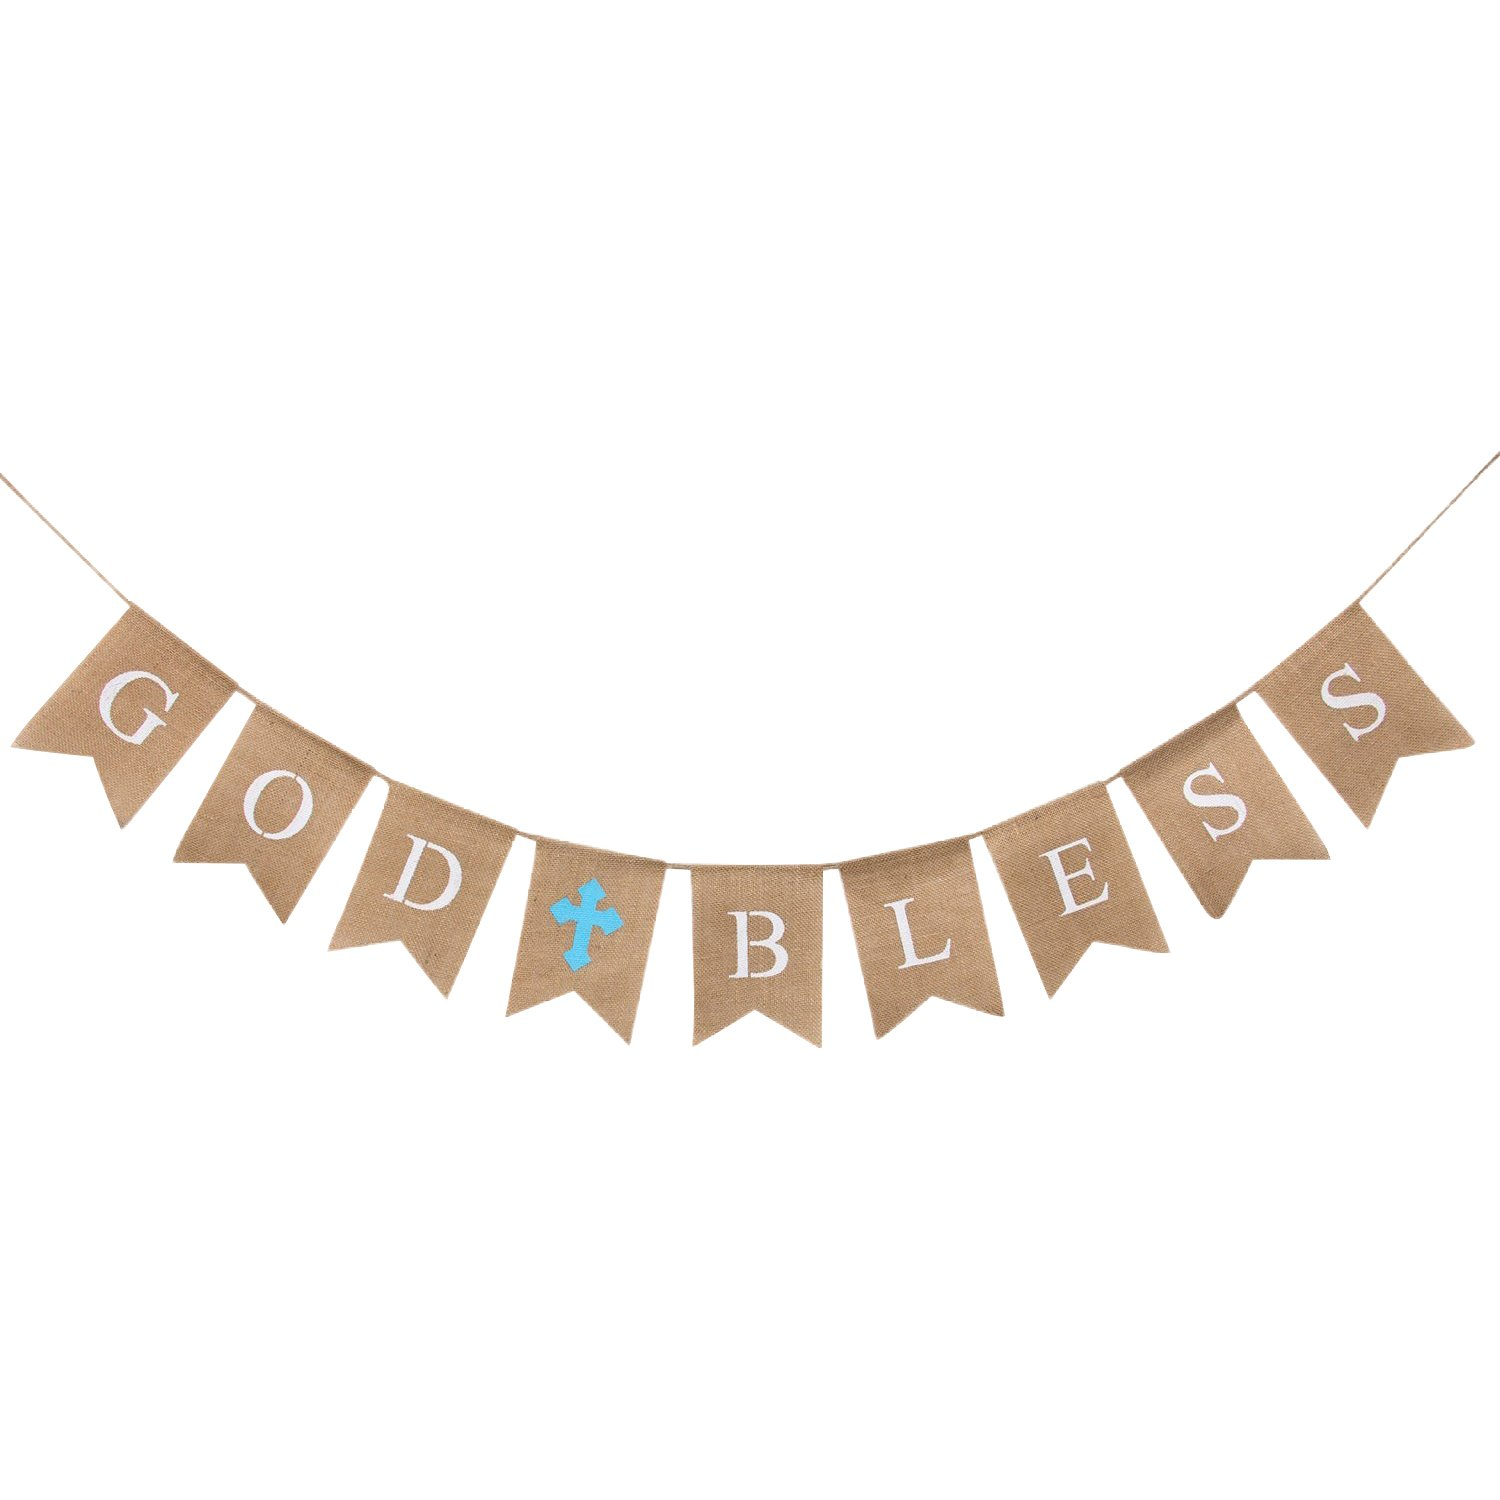 God Bless Baptism Banner by WATINC, Communion Party Banner, Christening Decoration Kit for Wedding